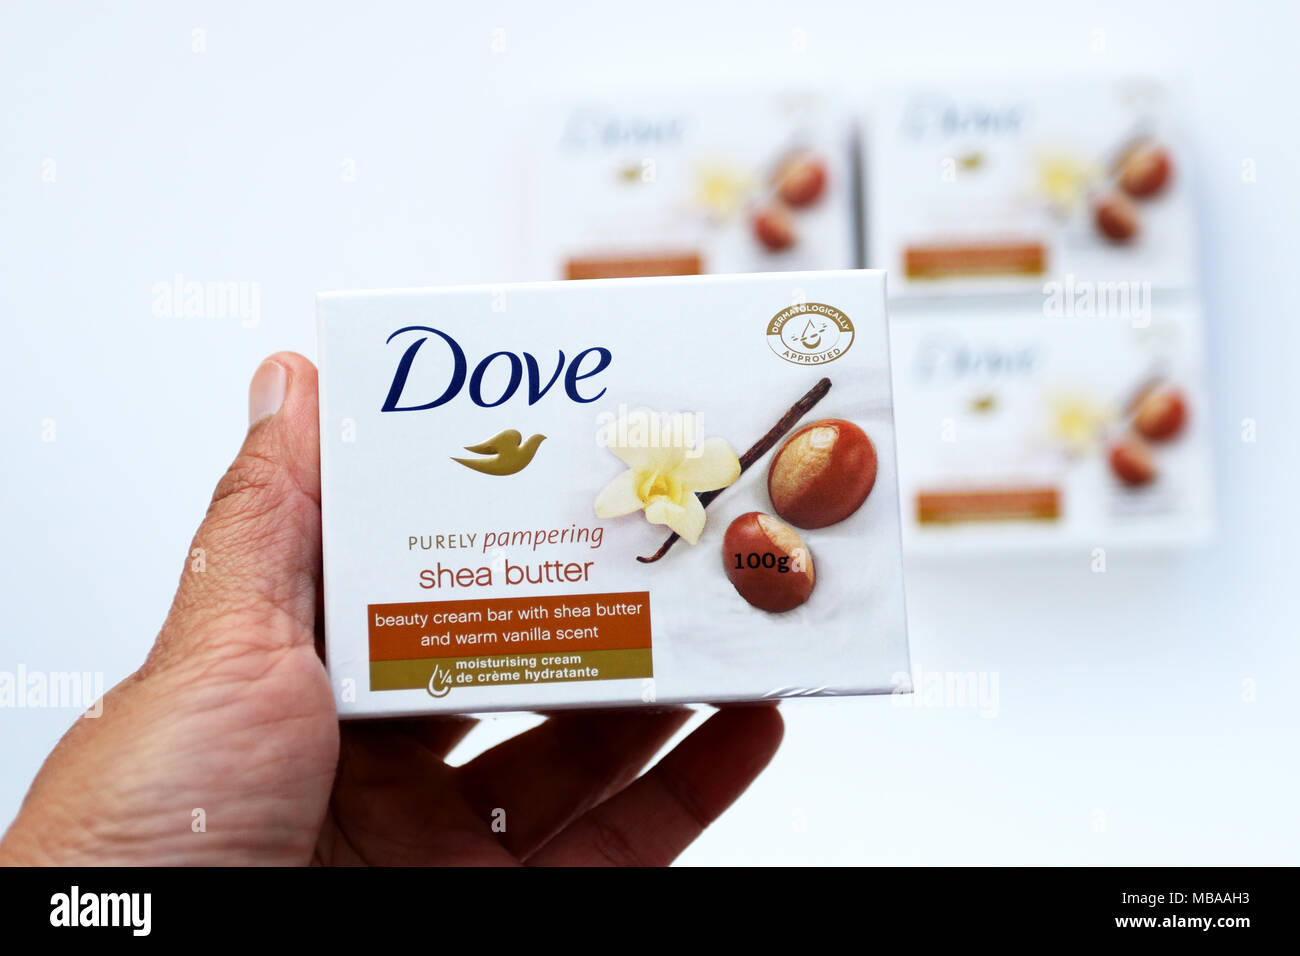 how to make hand soap from dove bar soap